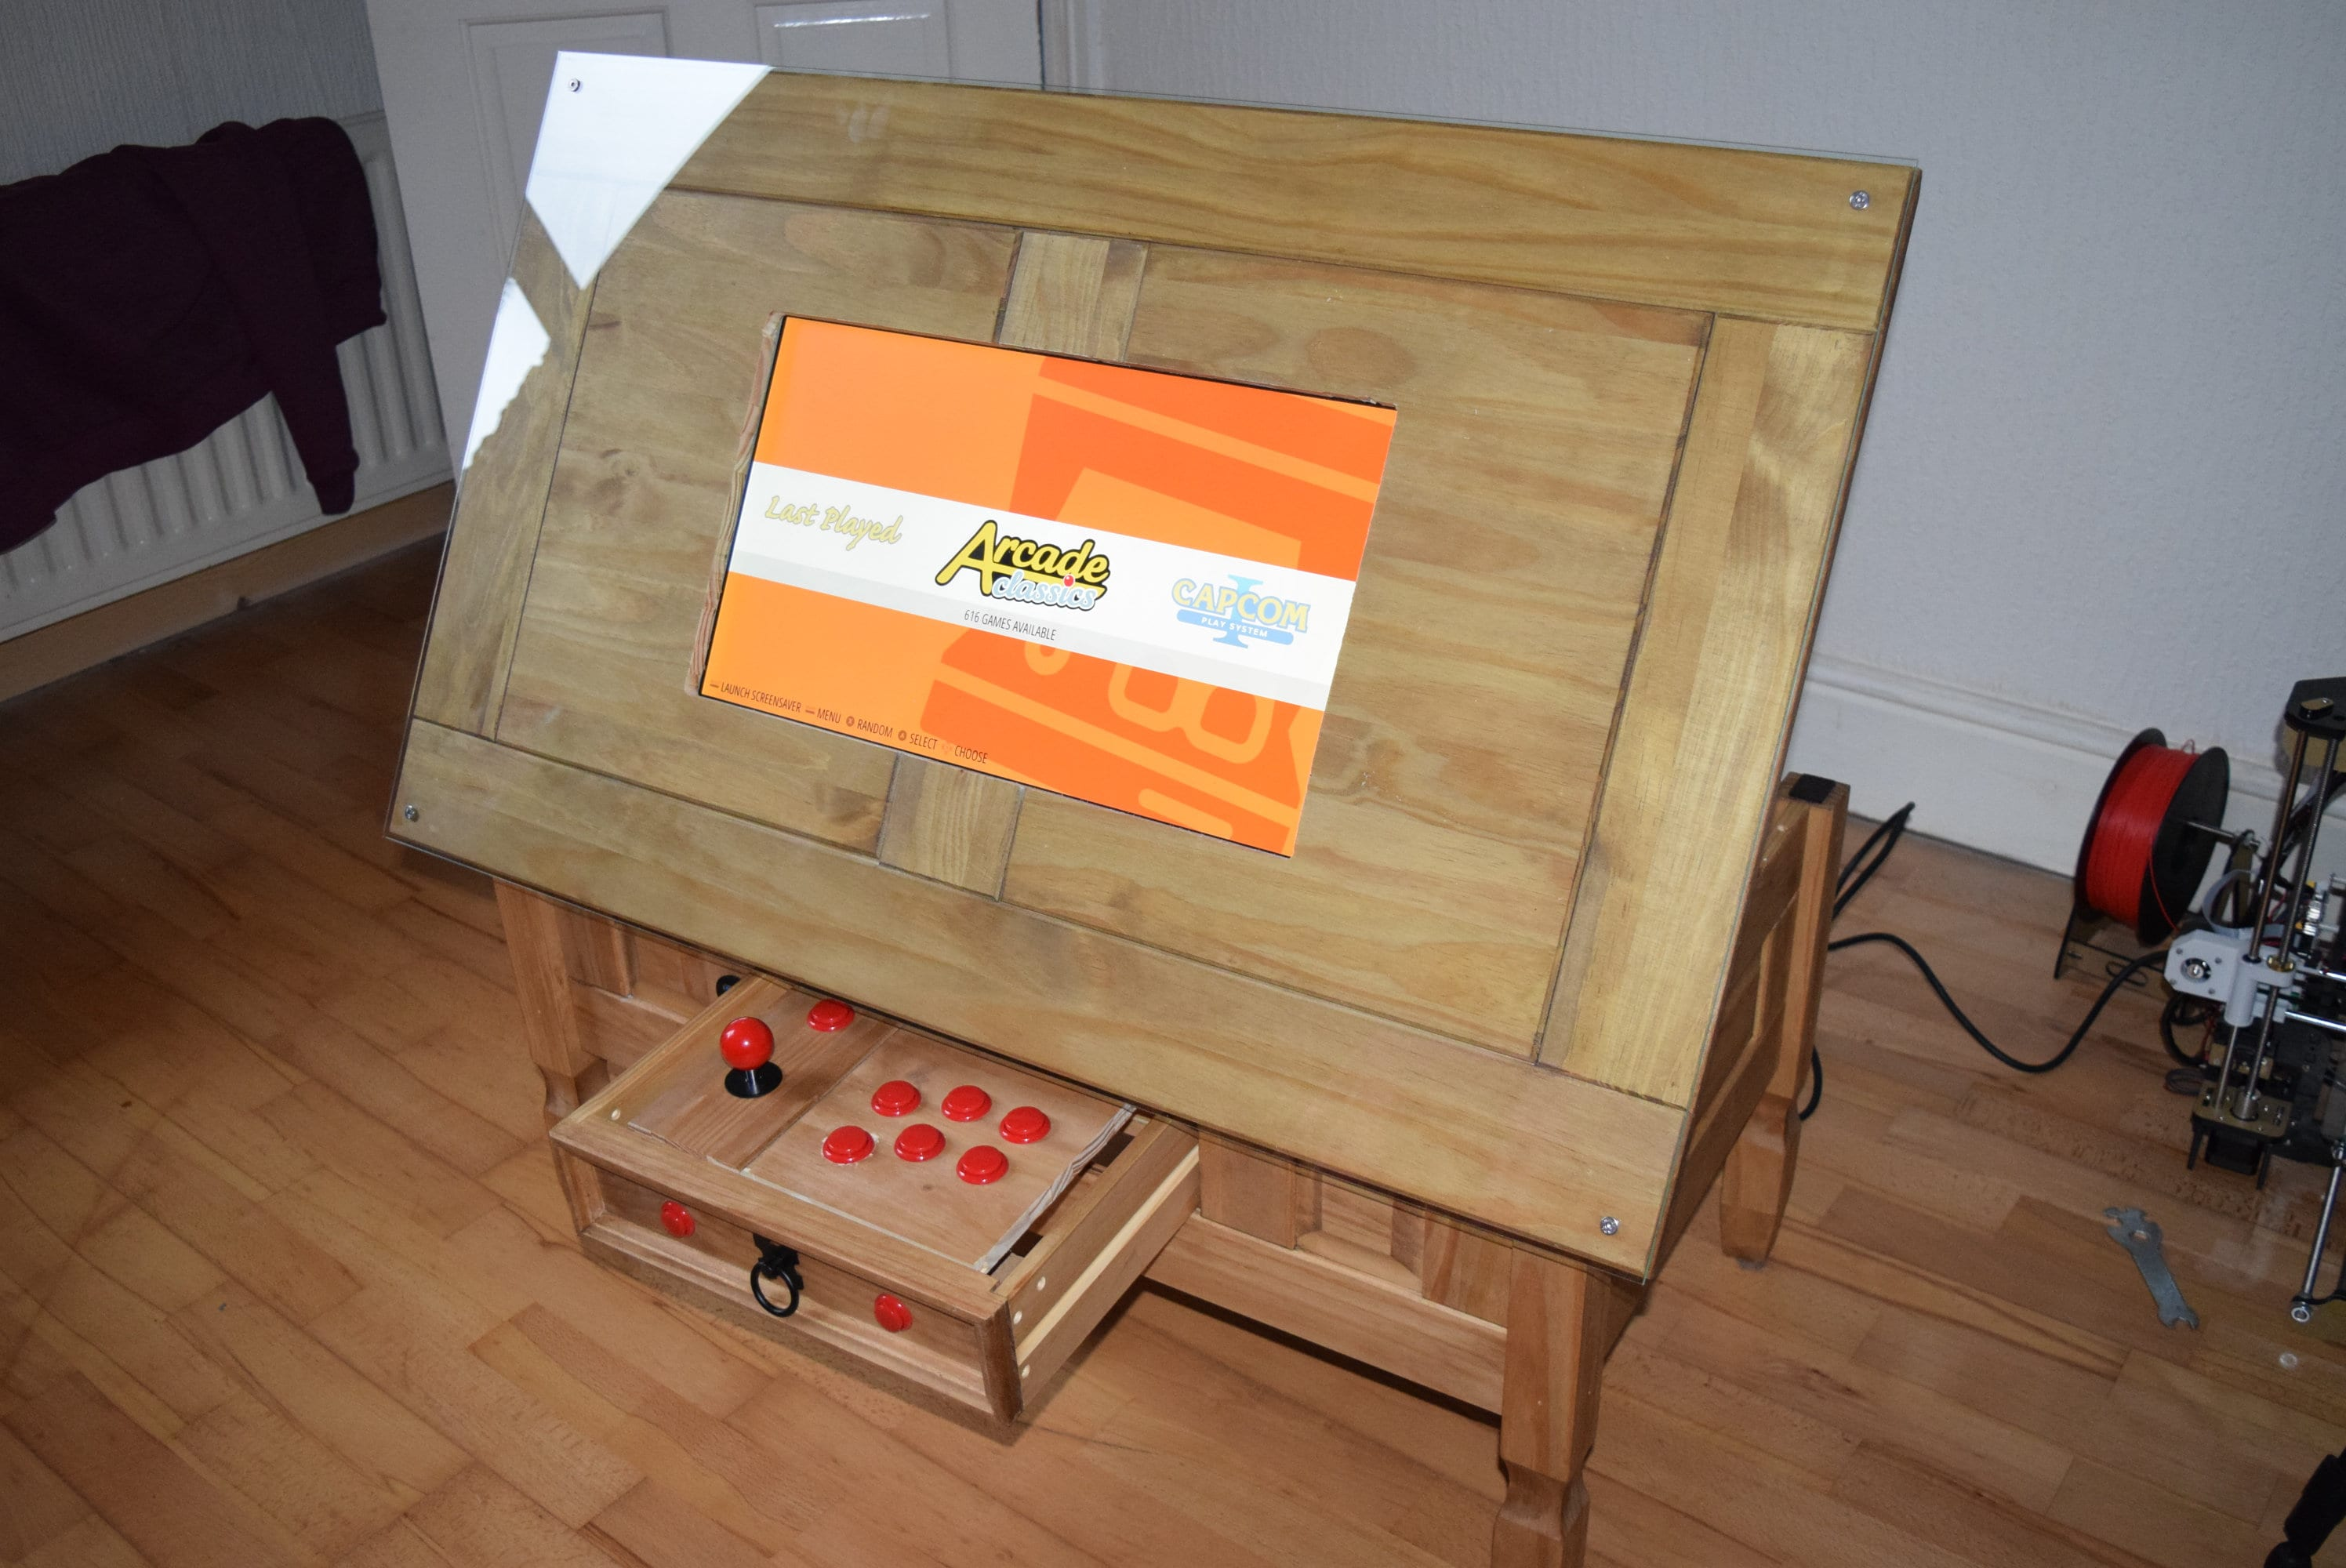 Arcade Coffee Table.Retro Arcade Coffee Table Multi Console Games System Over 5000 Games Must See